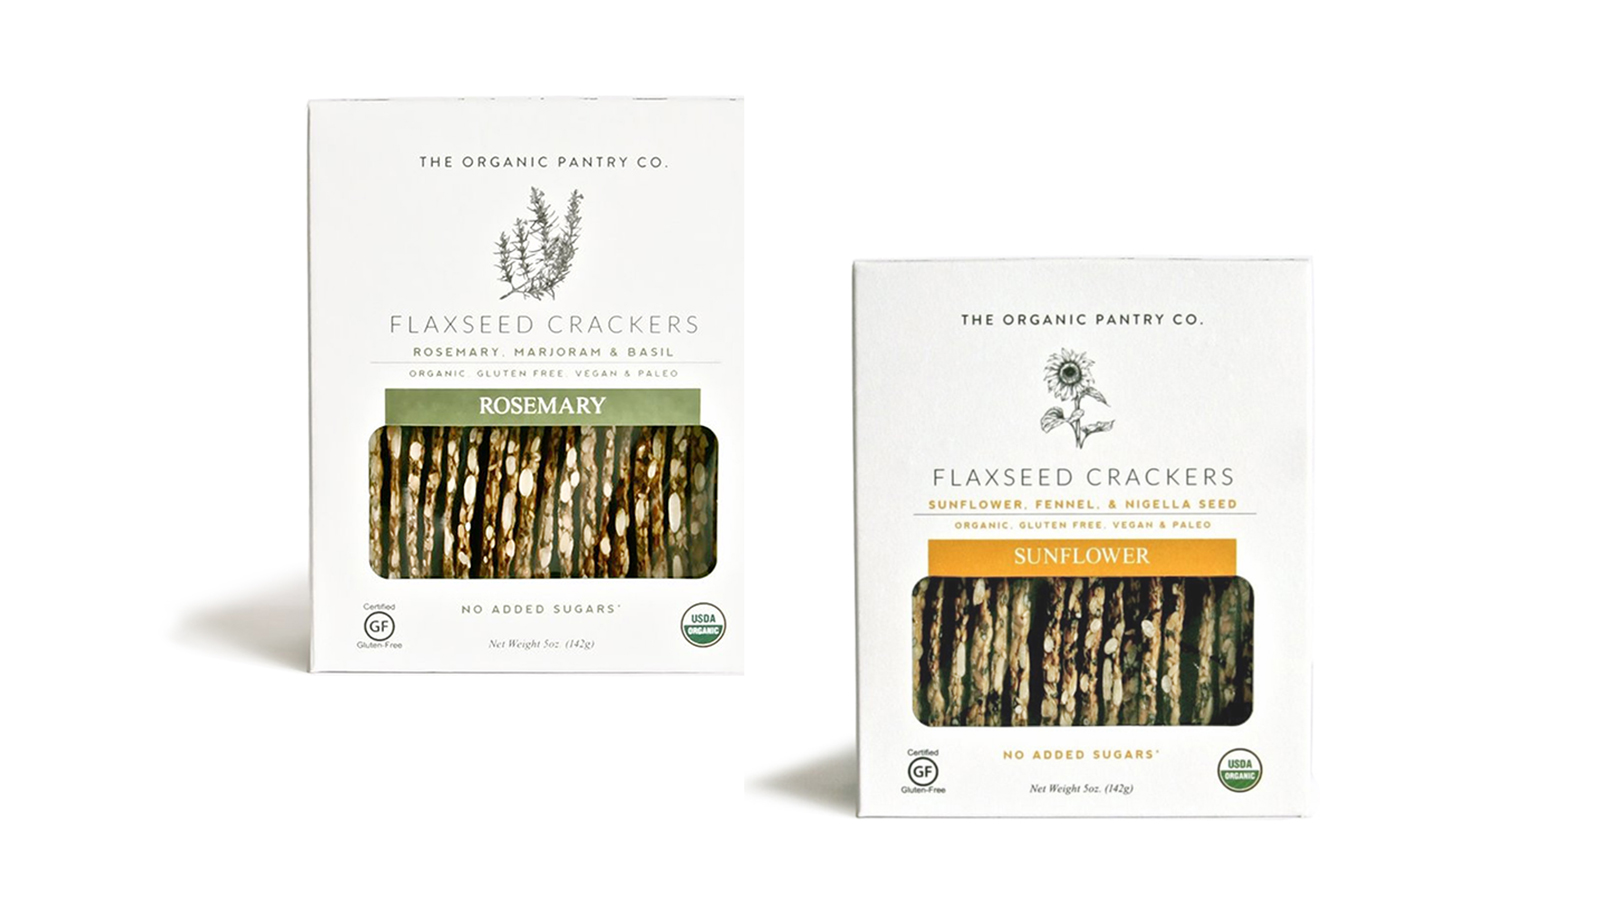 The Organic Pantry Co. Flaxseed Crackers